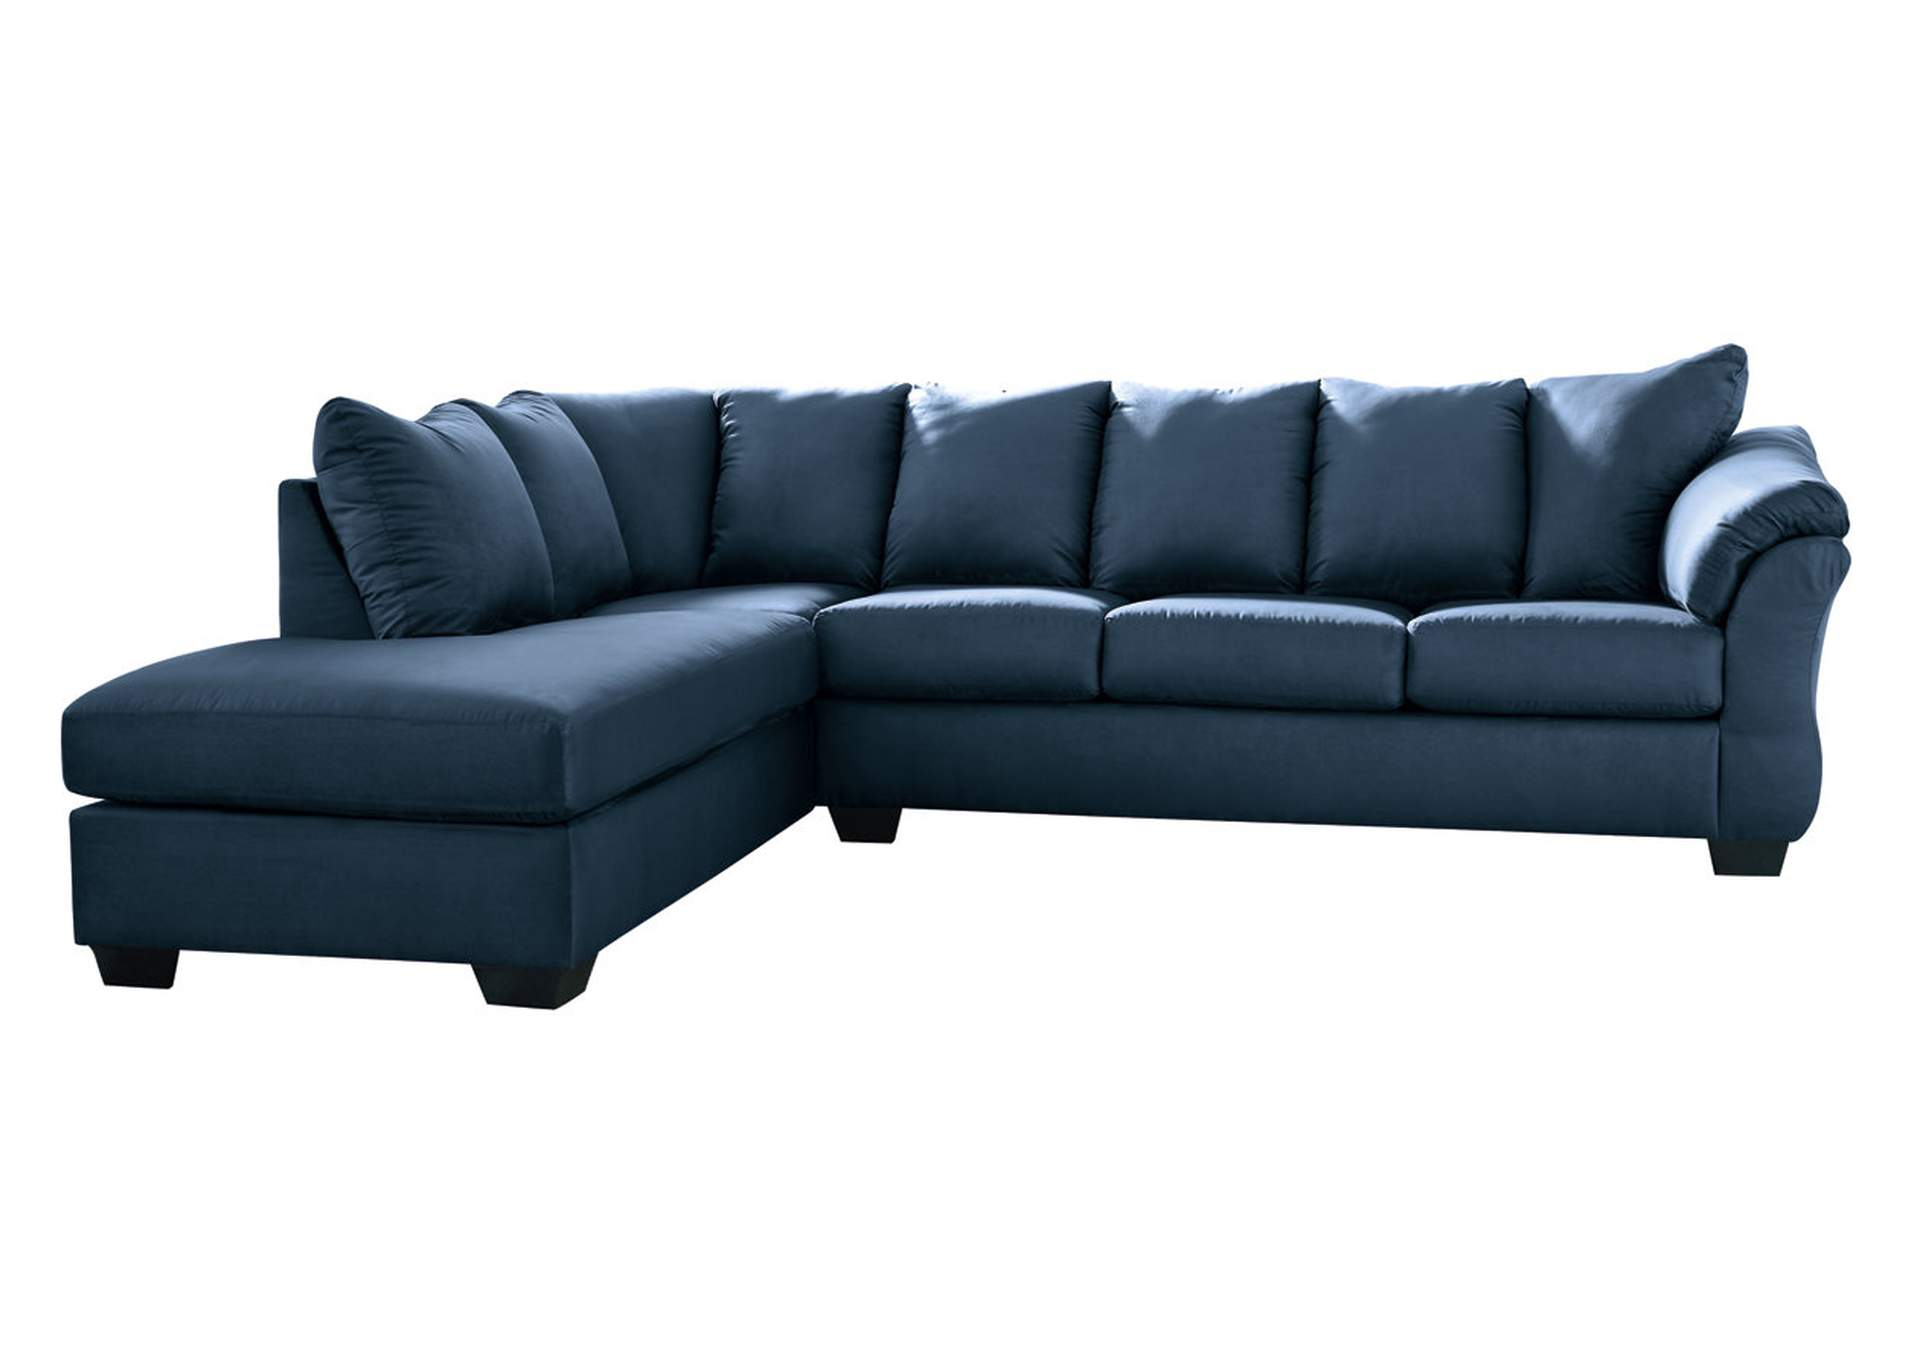 Darcy Blue LAF Chaise Sectional,Signature Design By Ashley